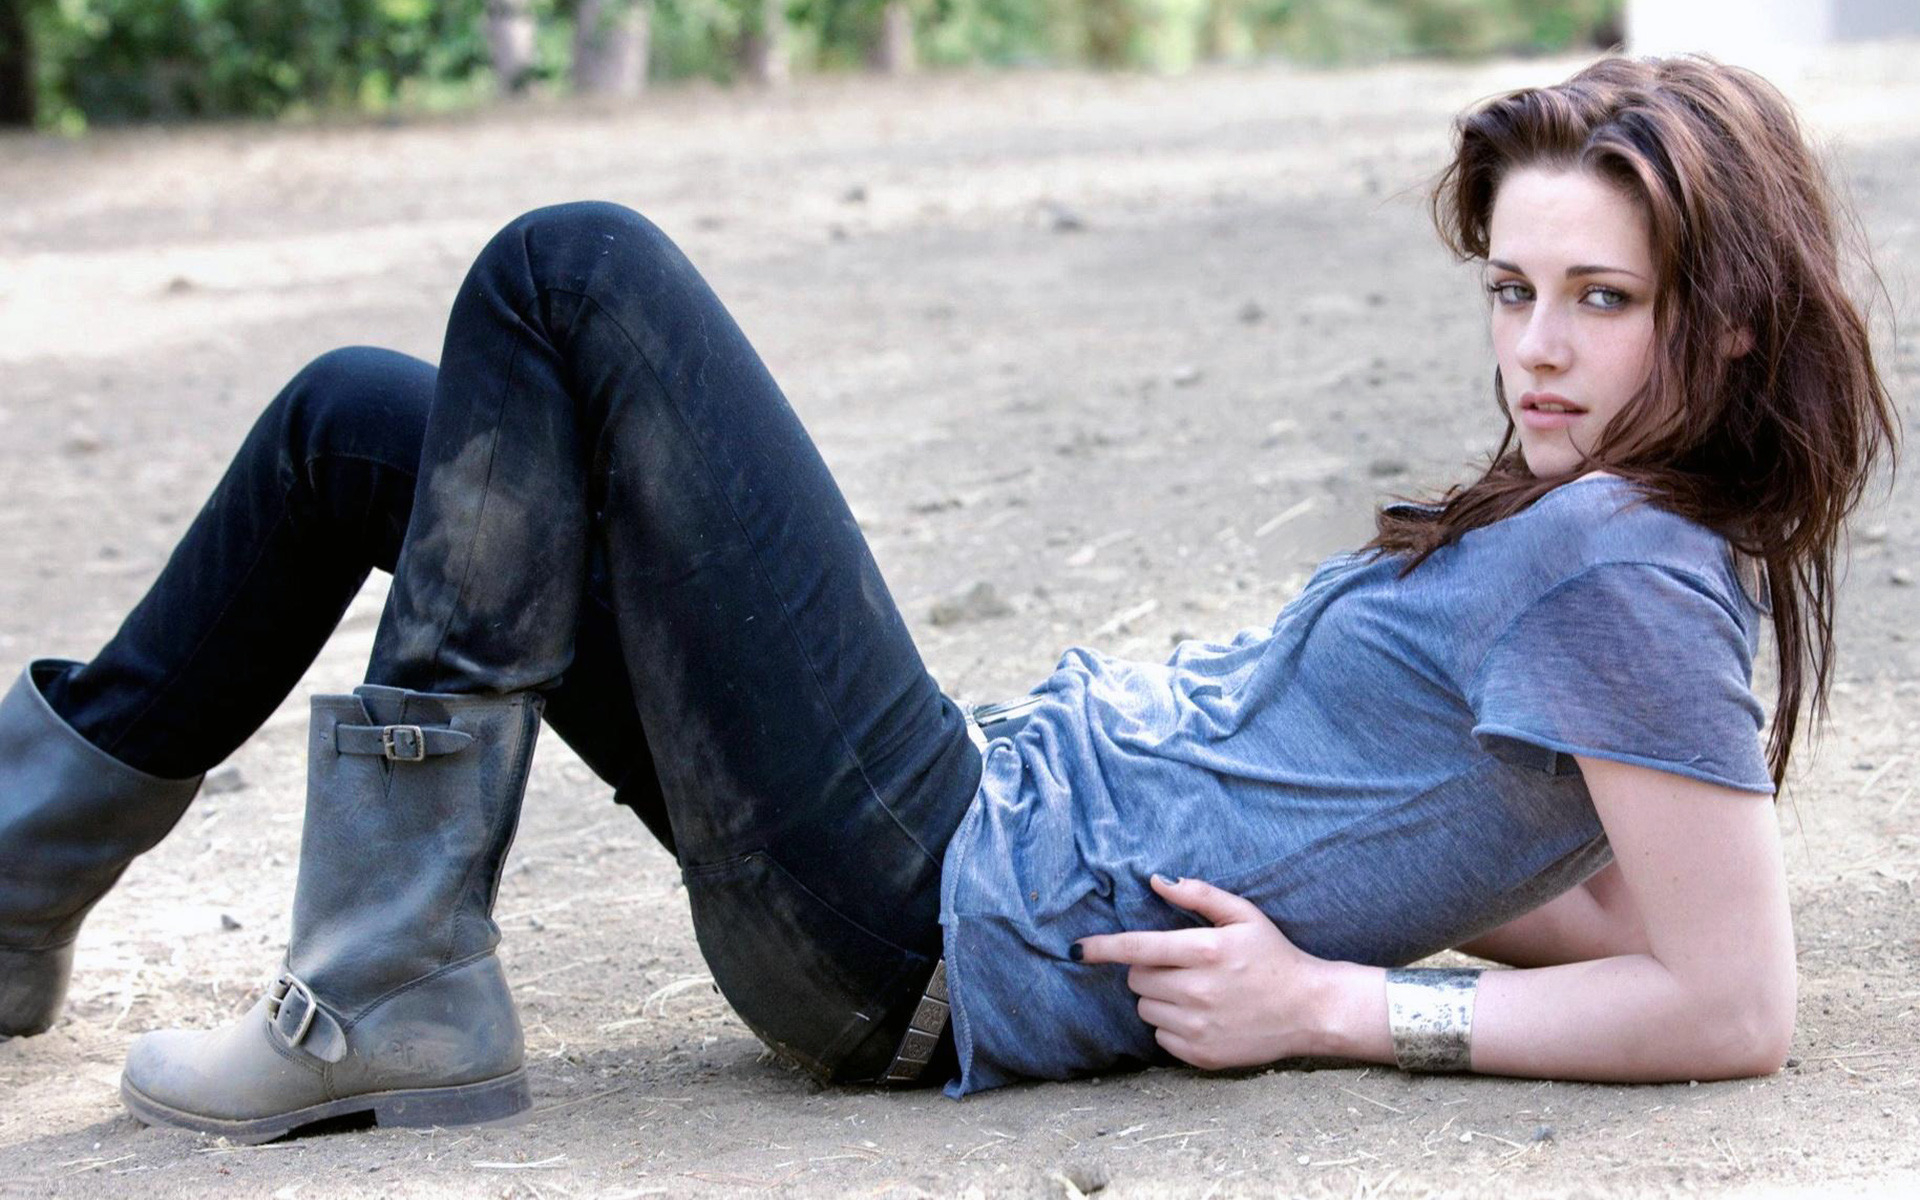 kristen stewart awesome and fabulous images hd wallpapers photos